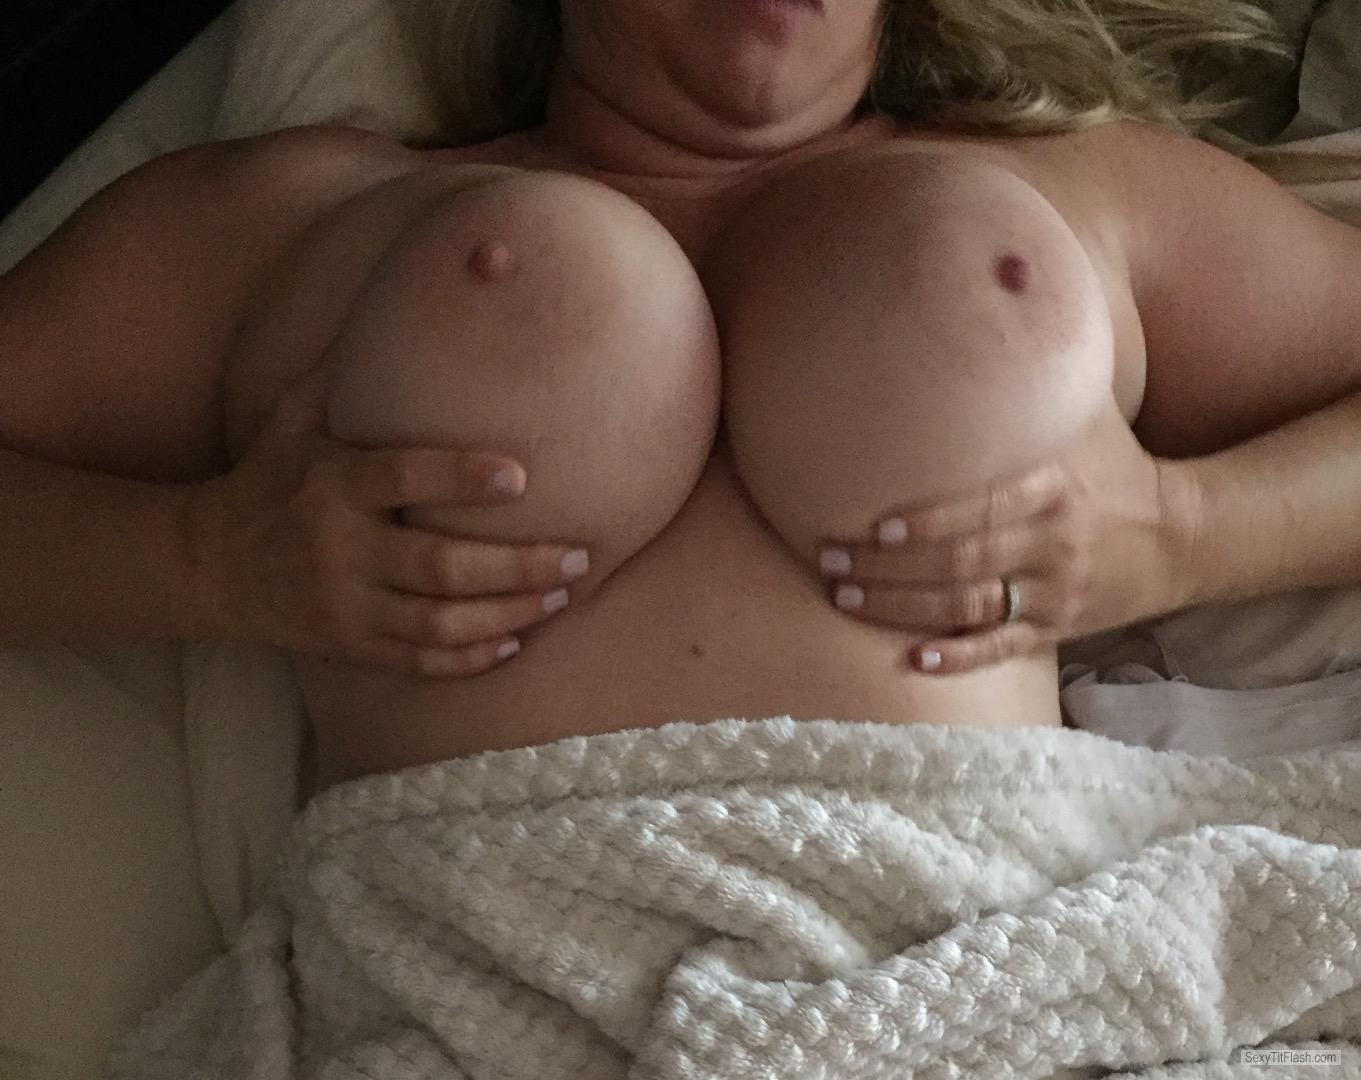 Tit Flash: My Very Small Tits - Sunnyonesfl from United States